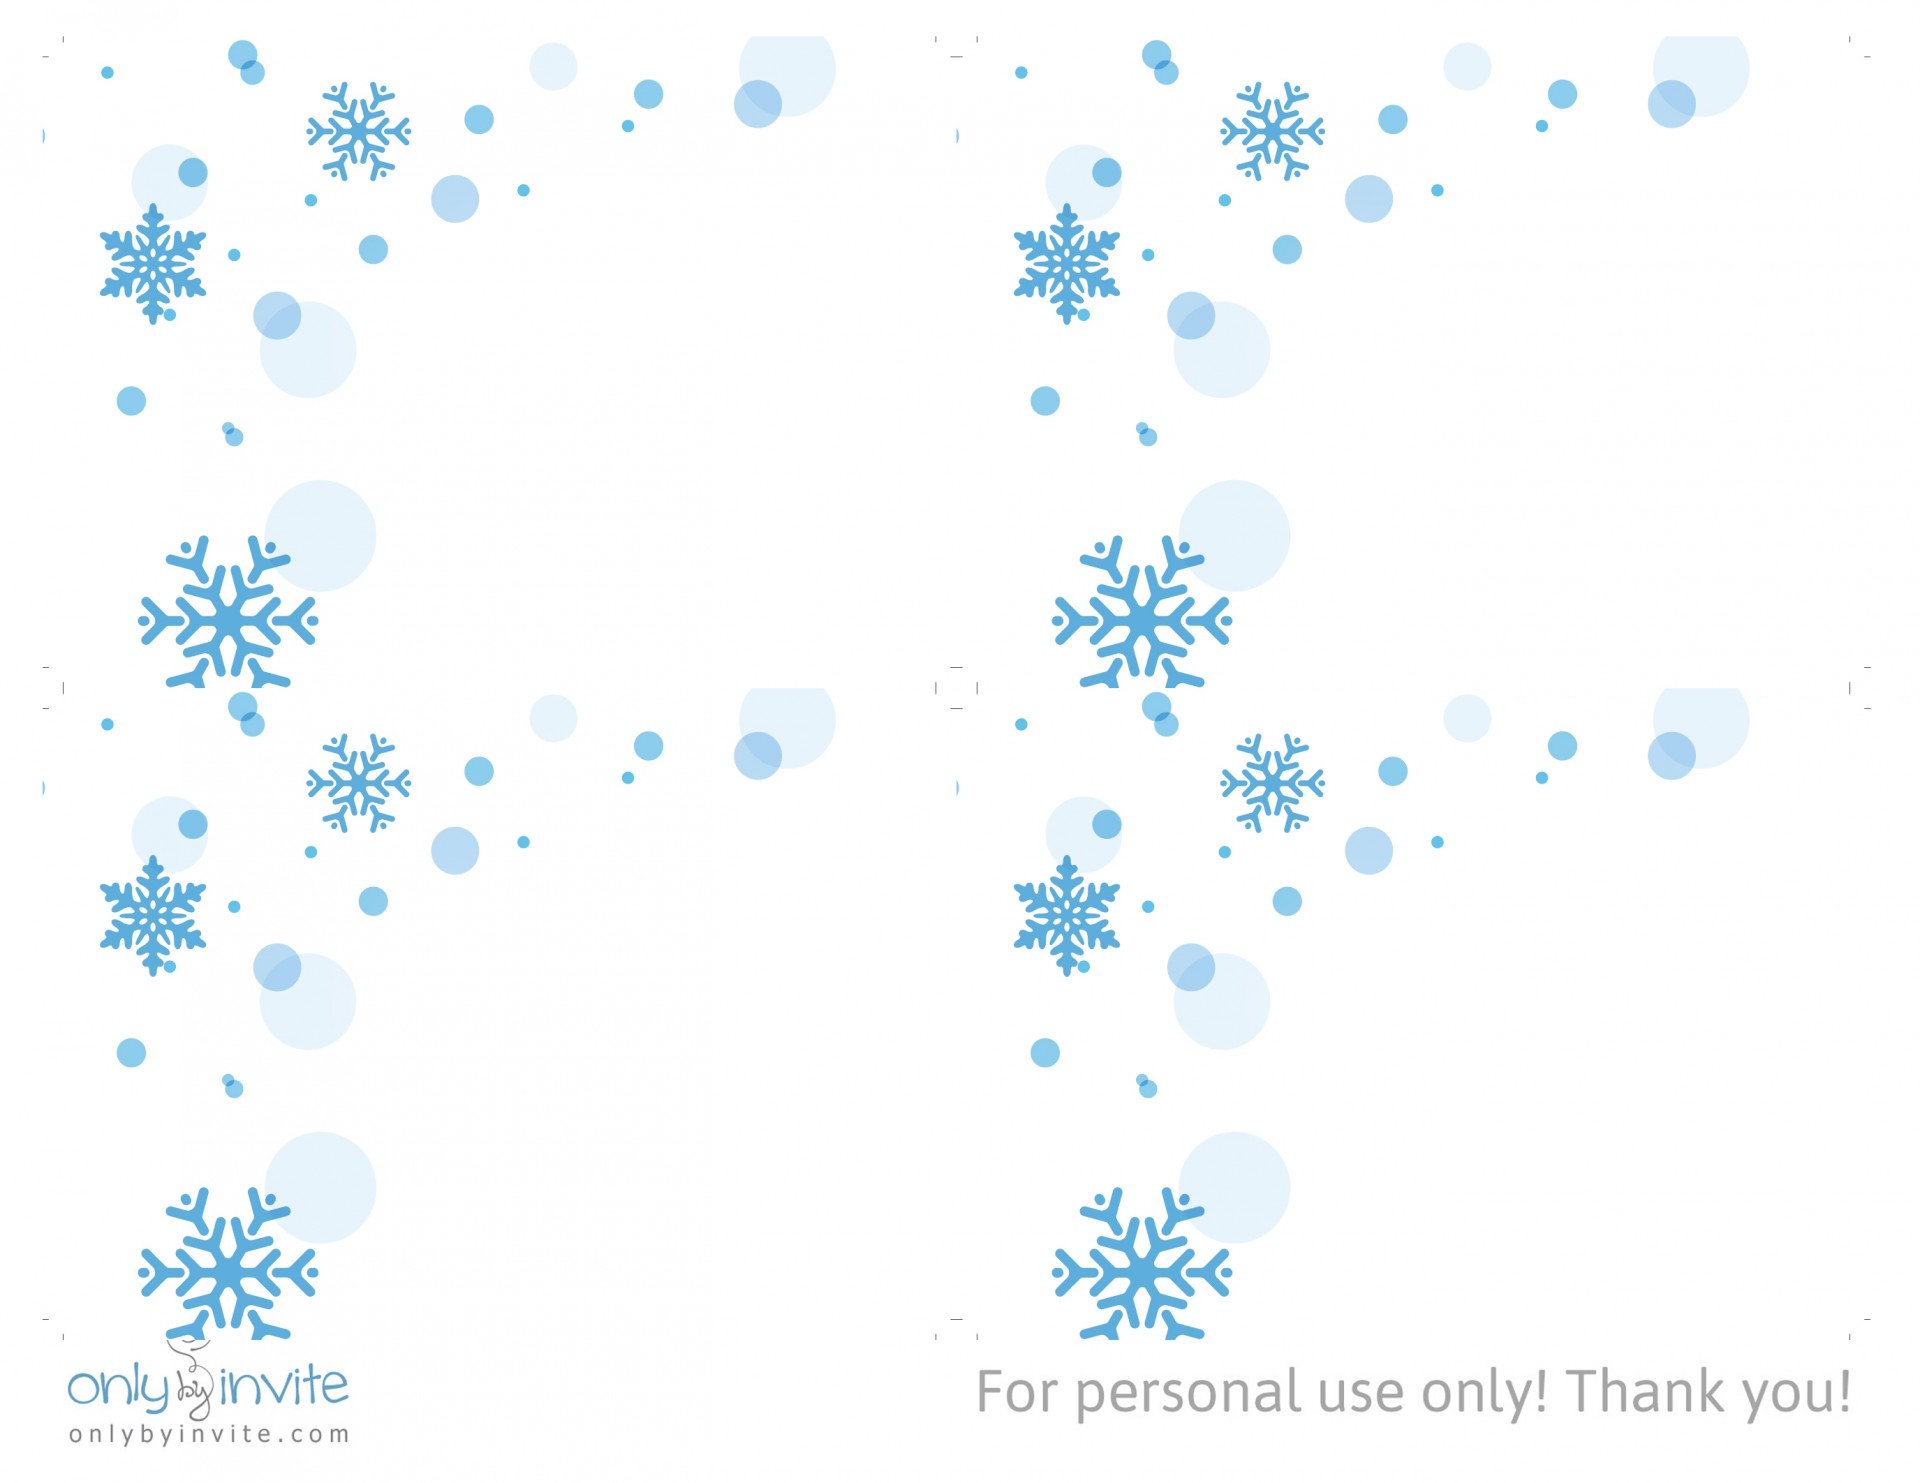 024 Free Printable Winter Snowflakes Wedding Rsvp Card Template - Free Printable Rsvp Cards